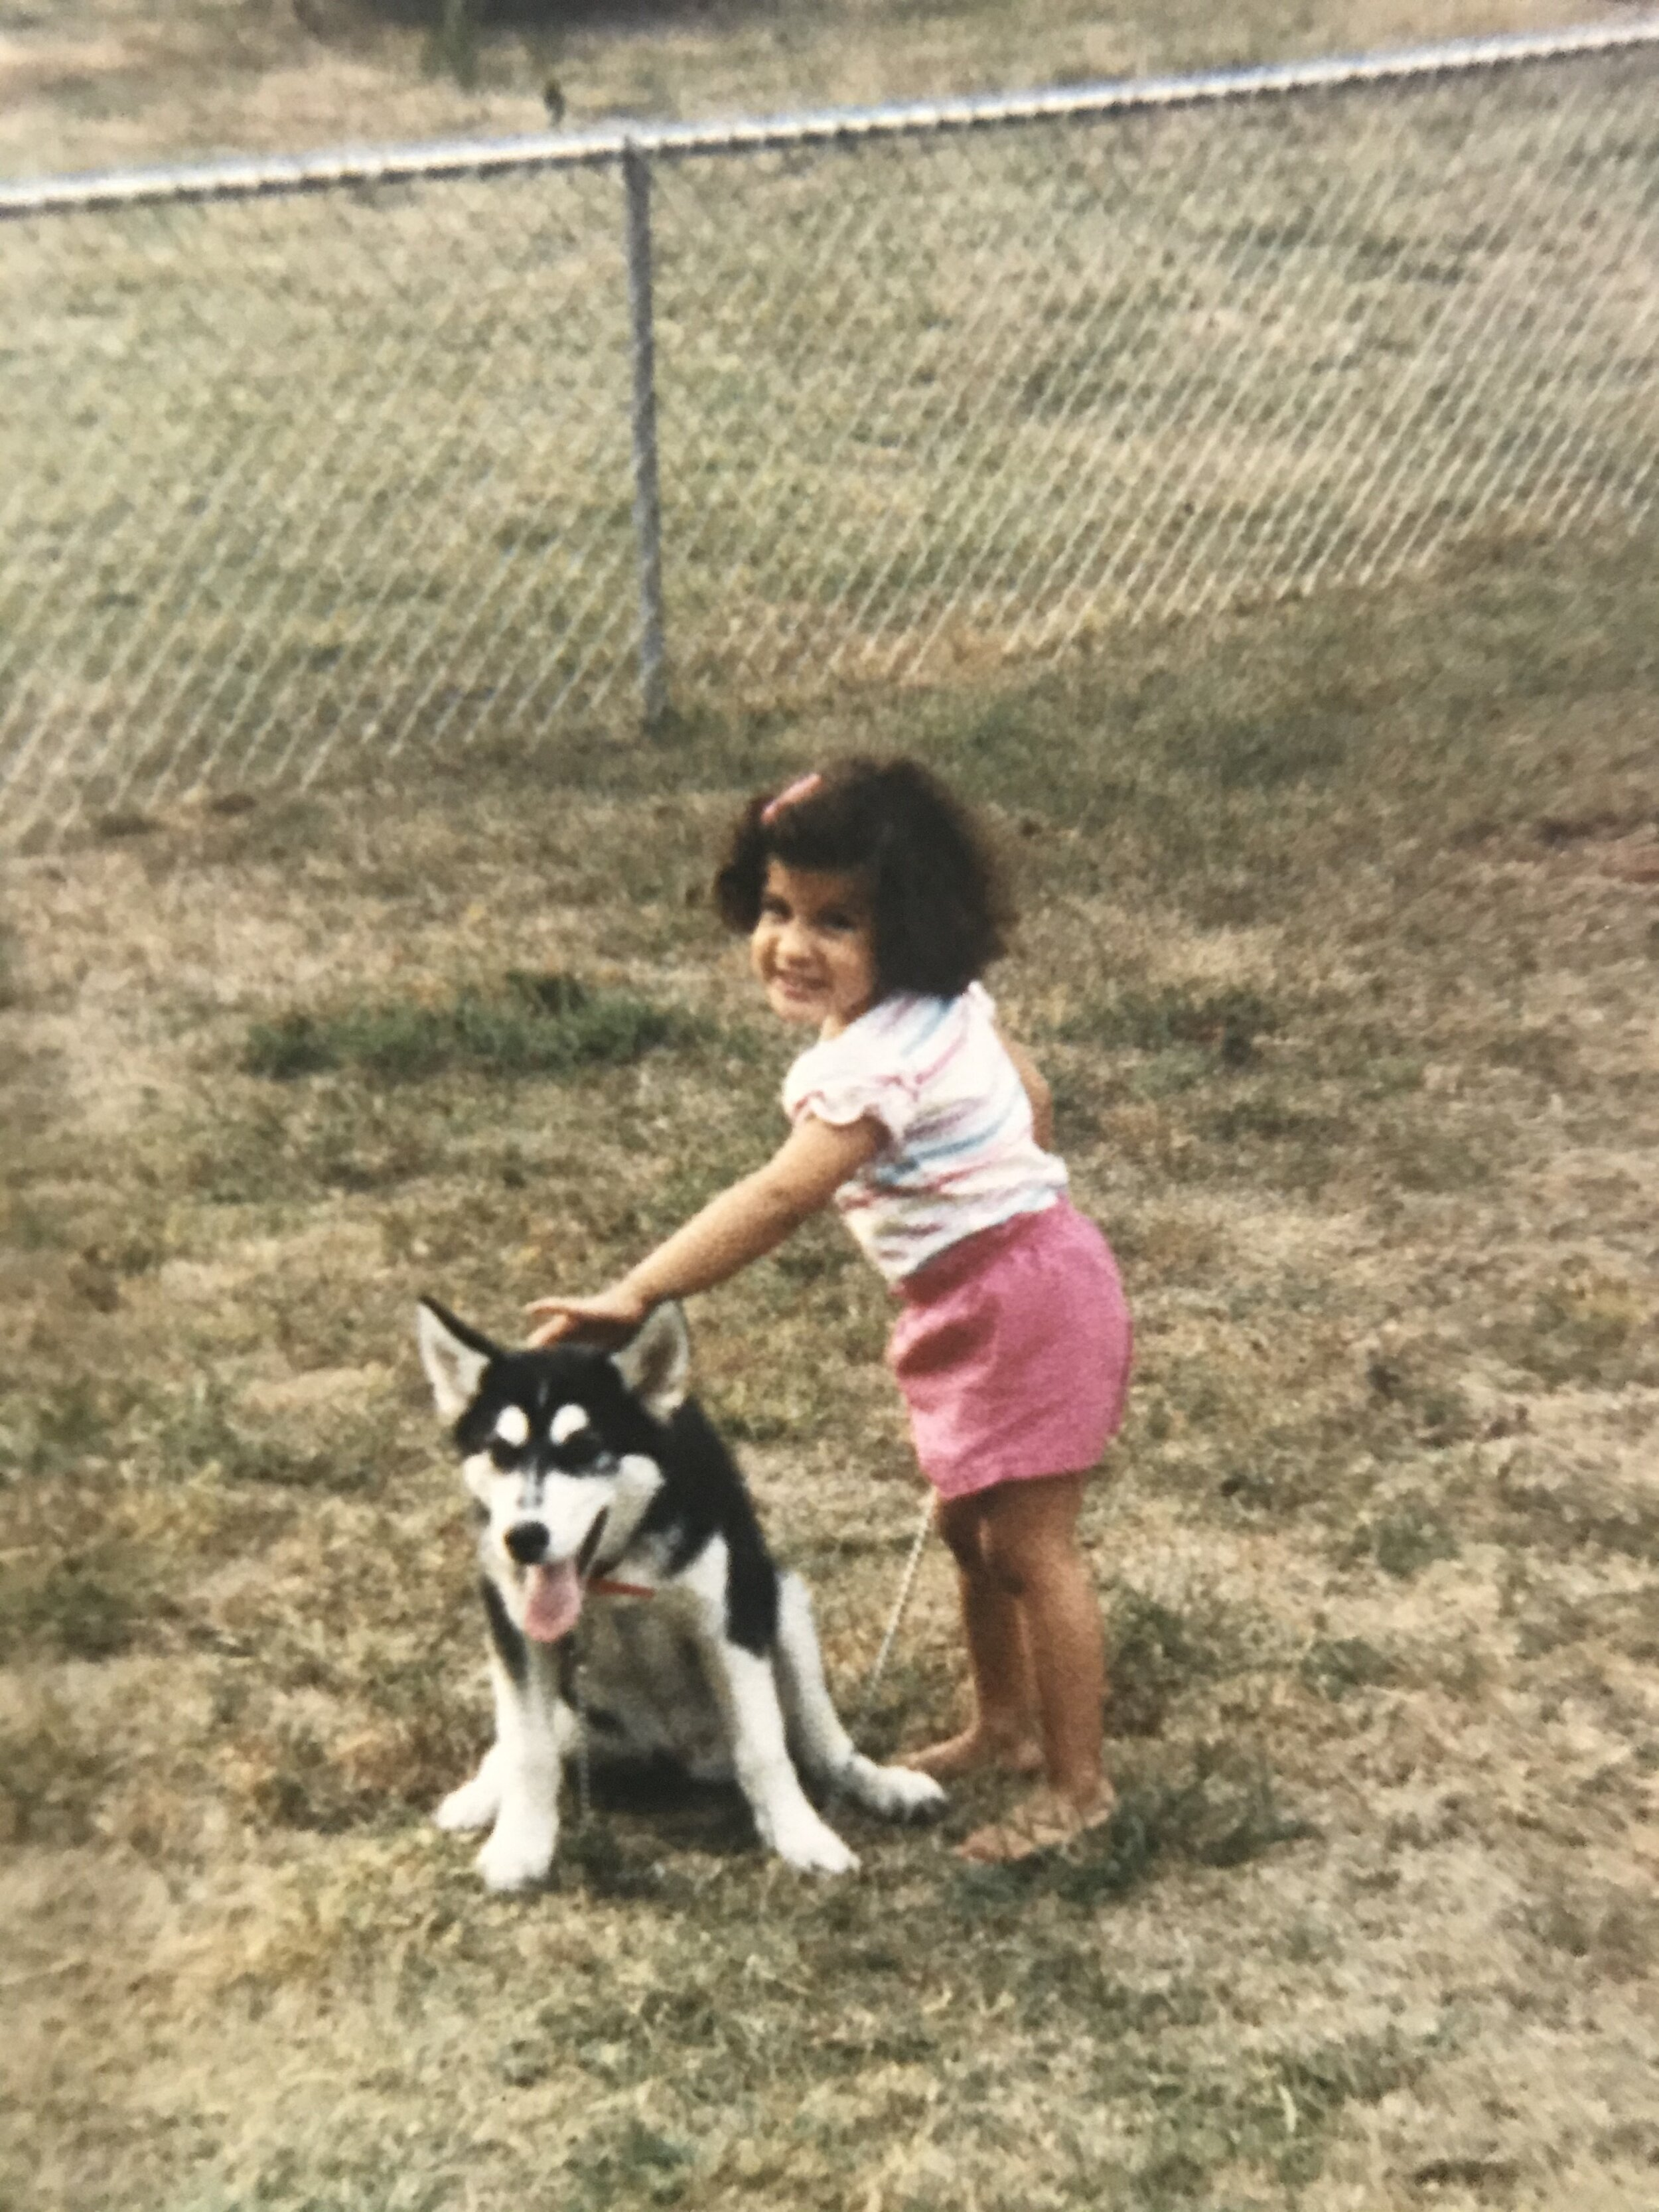 This is Sabre, my aunt's Siberian Husky who I grew up with. We were and still are connected in a way that's hard to put into words.